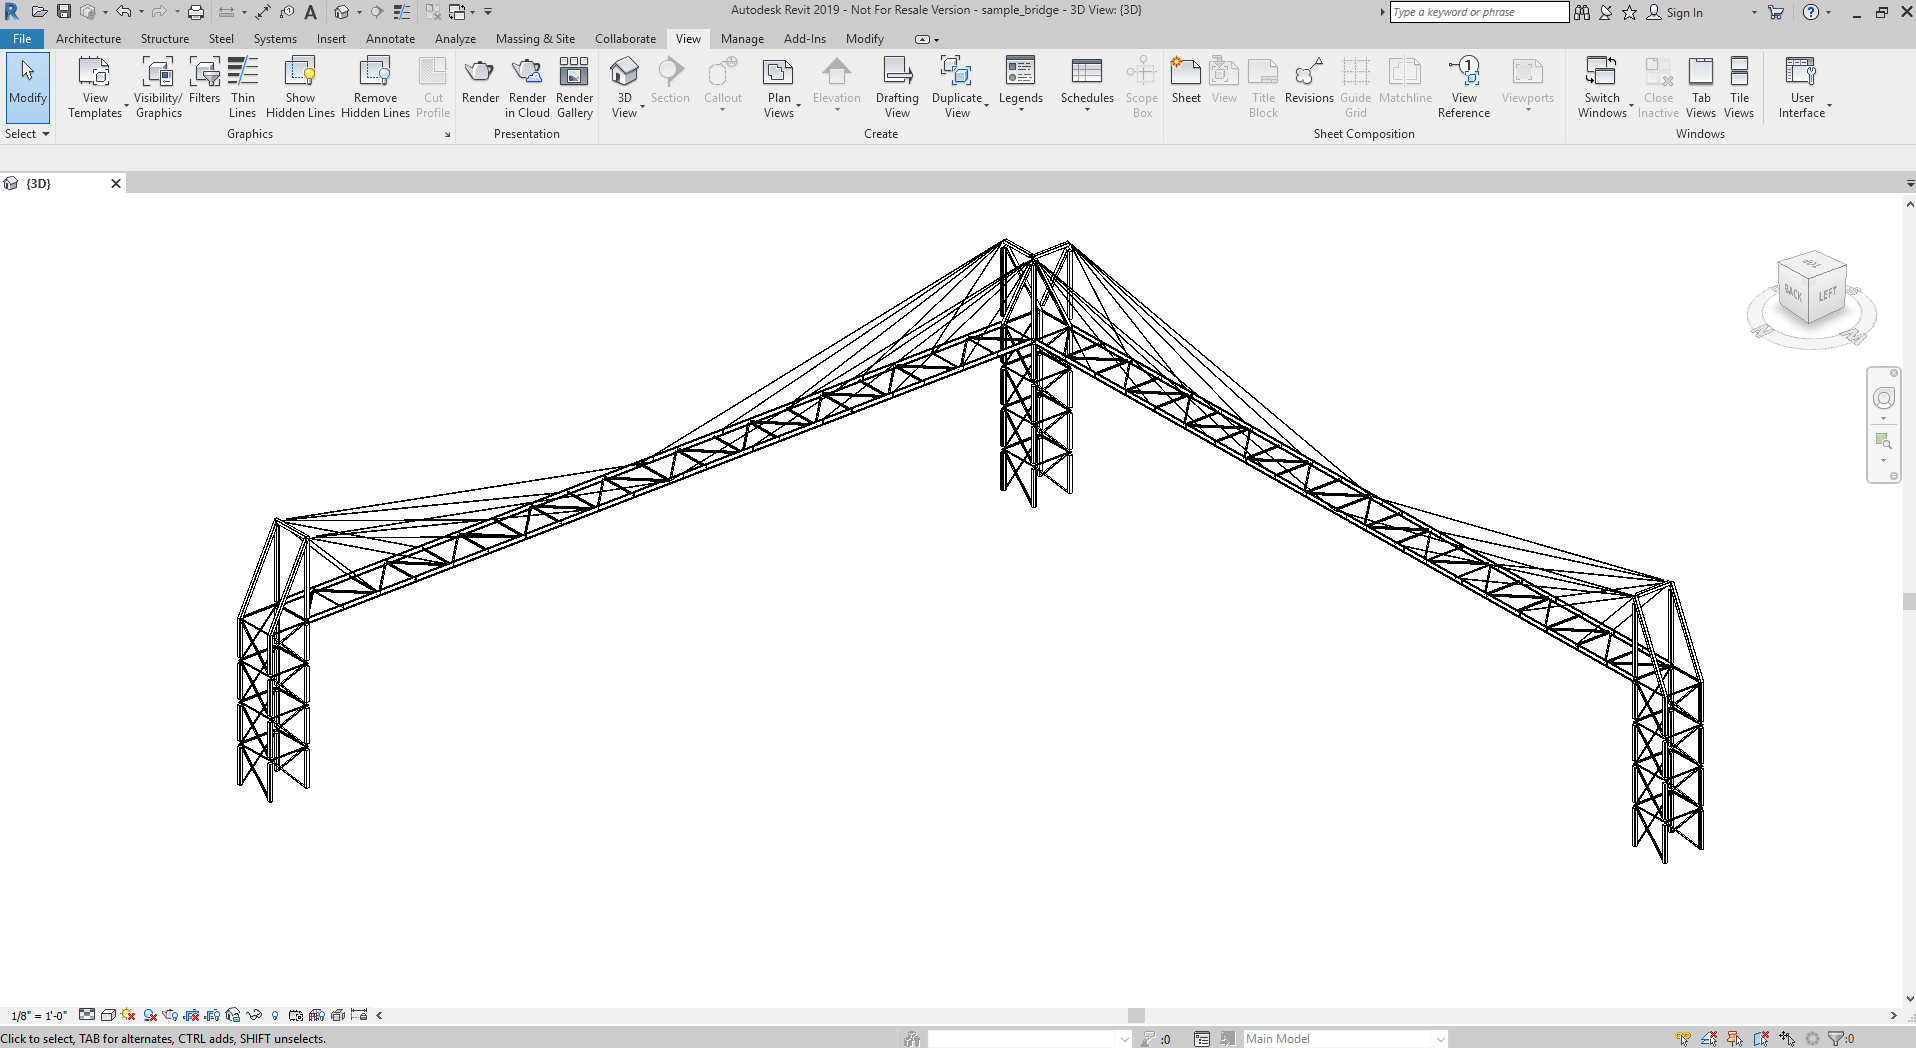 Autodesk Revit imported from a SkyCiv Structural 3D model